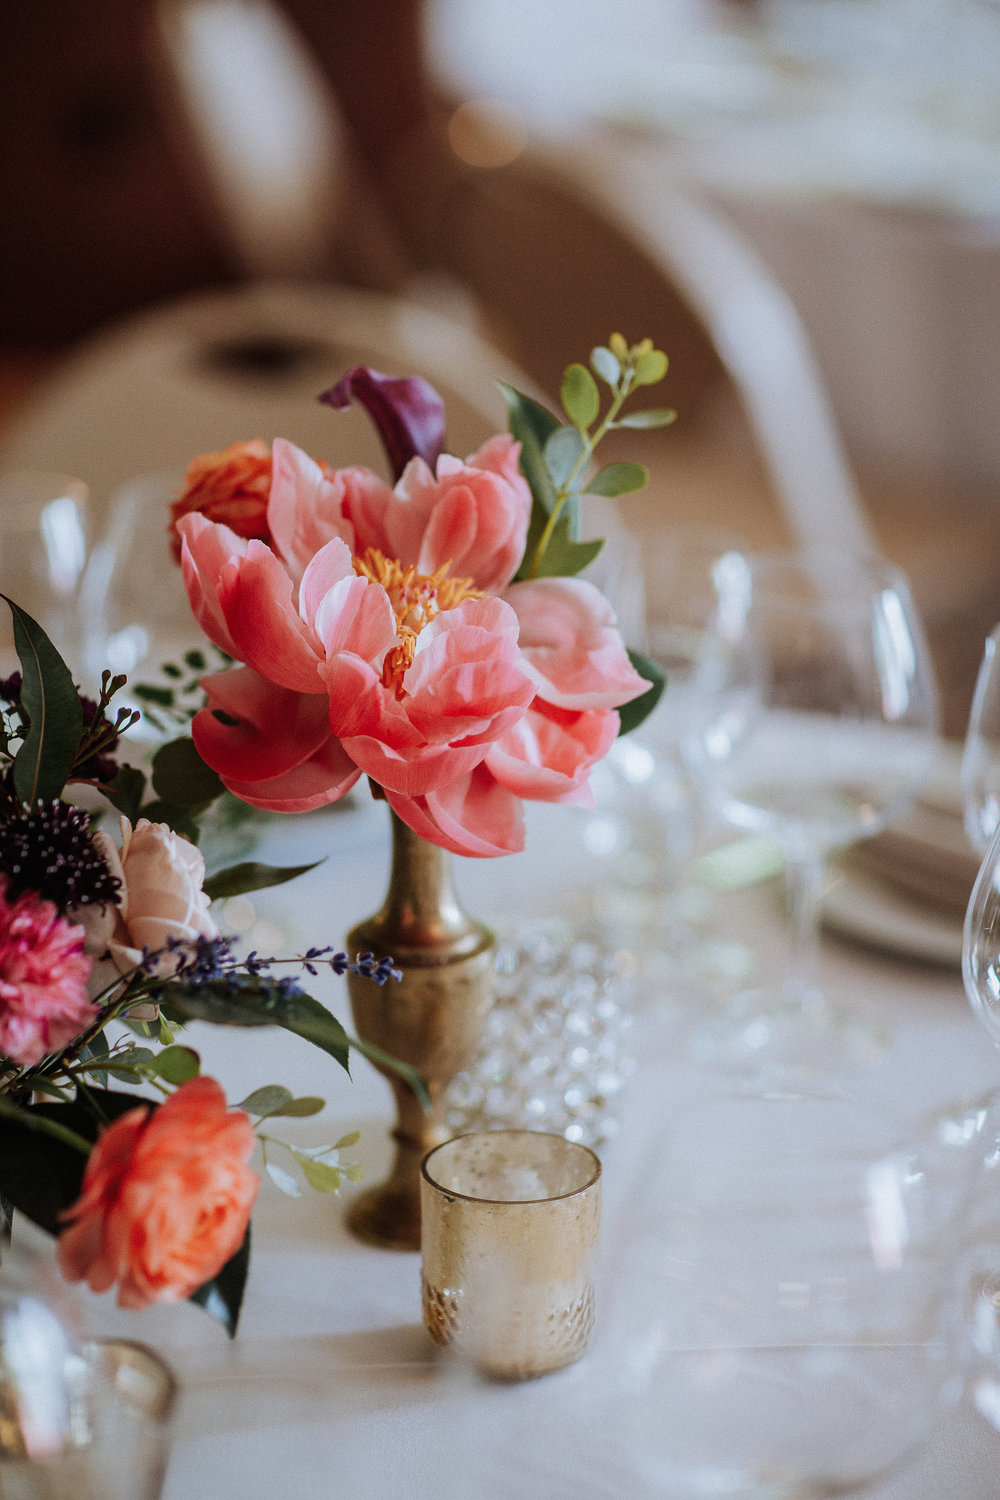 Bud vases with colorful flowers and candles by Venn Floral photographed by Gretchen Gause in Northern California at Villa Chanticleer.